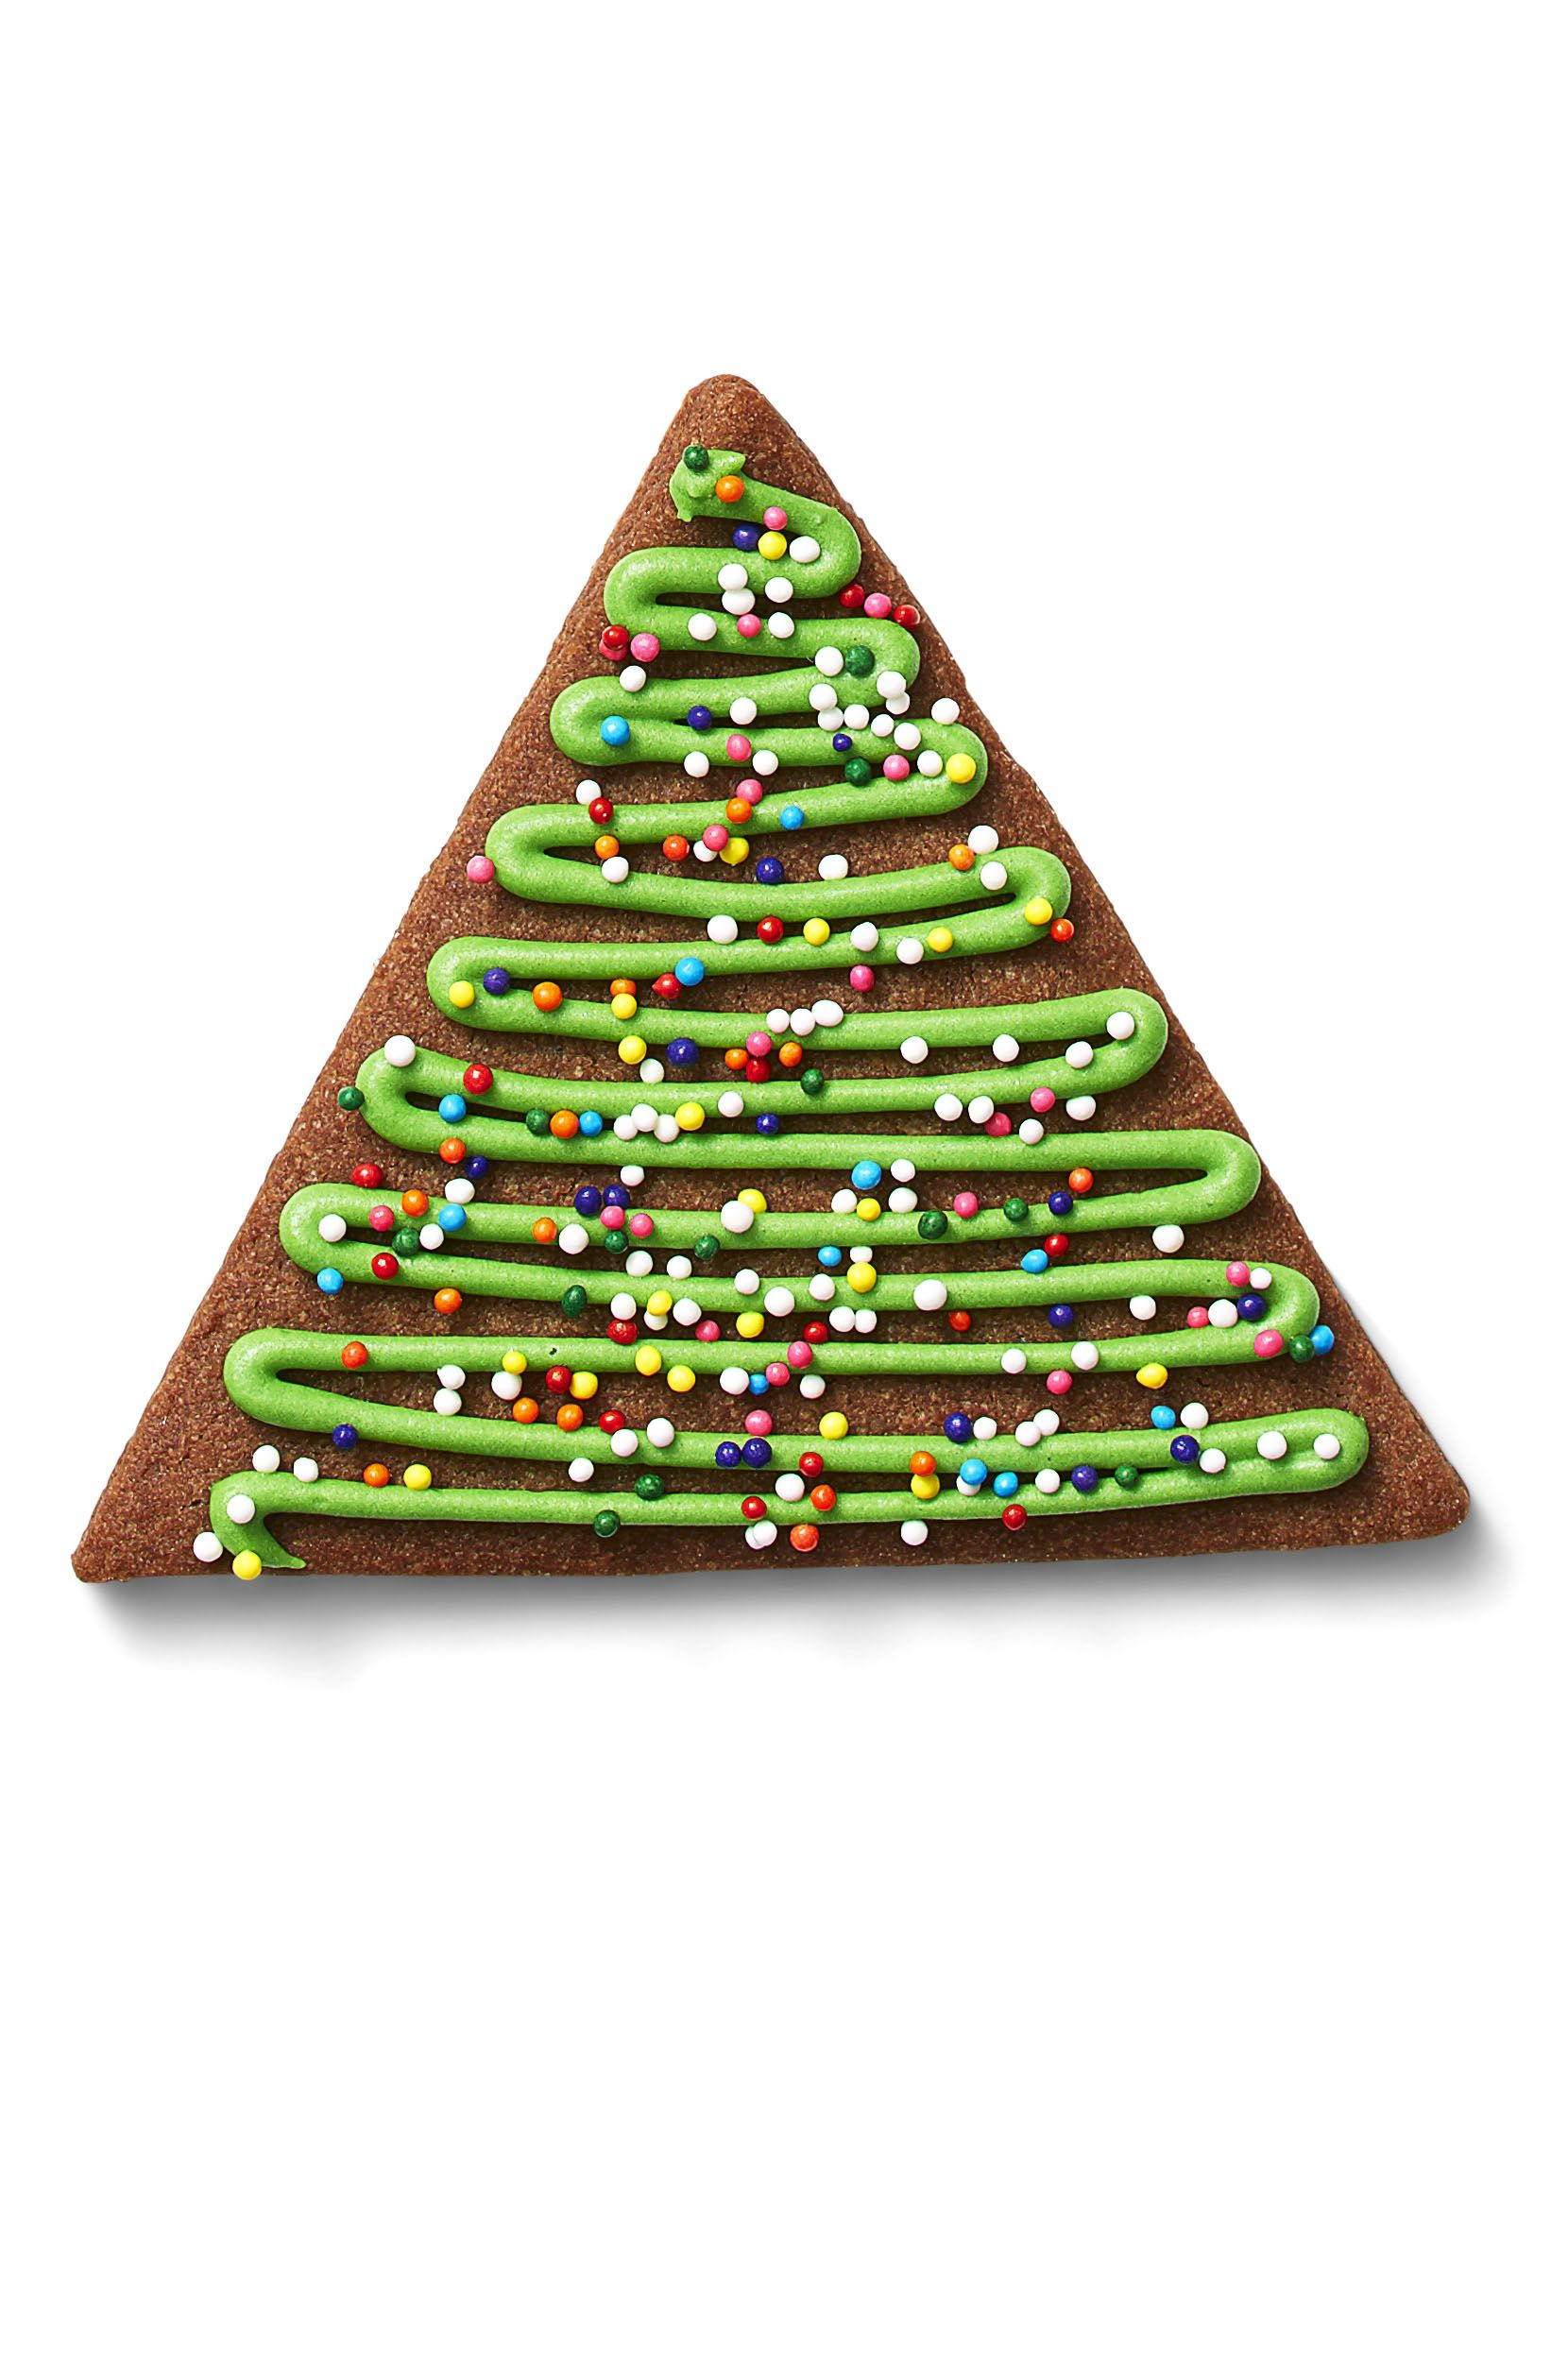 40 Christmas Cookie Decorating Ideas - How to Decorate Christmas Cookies